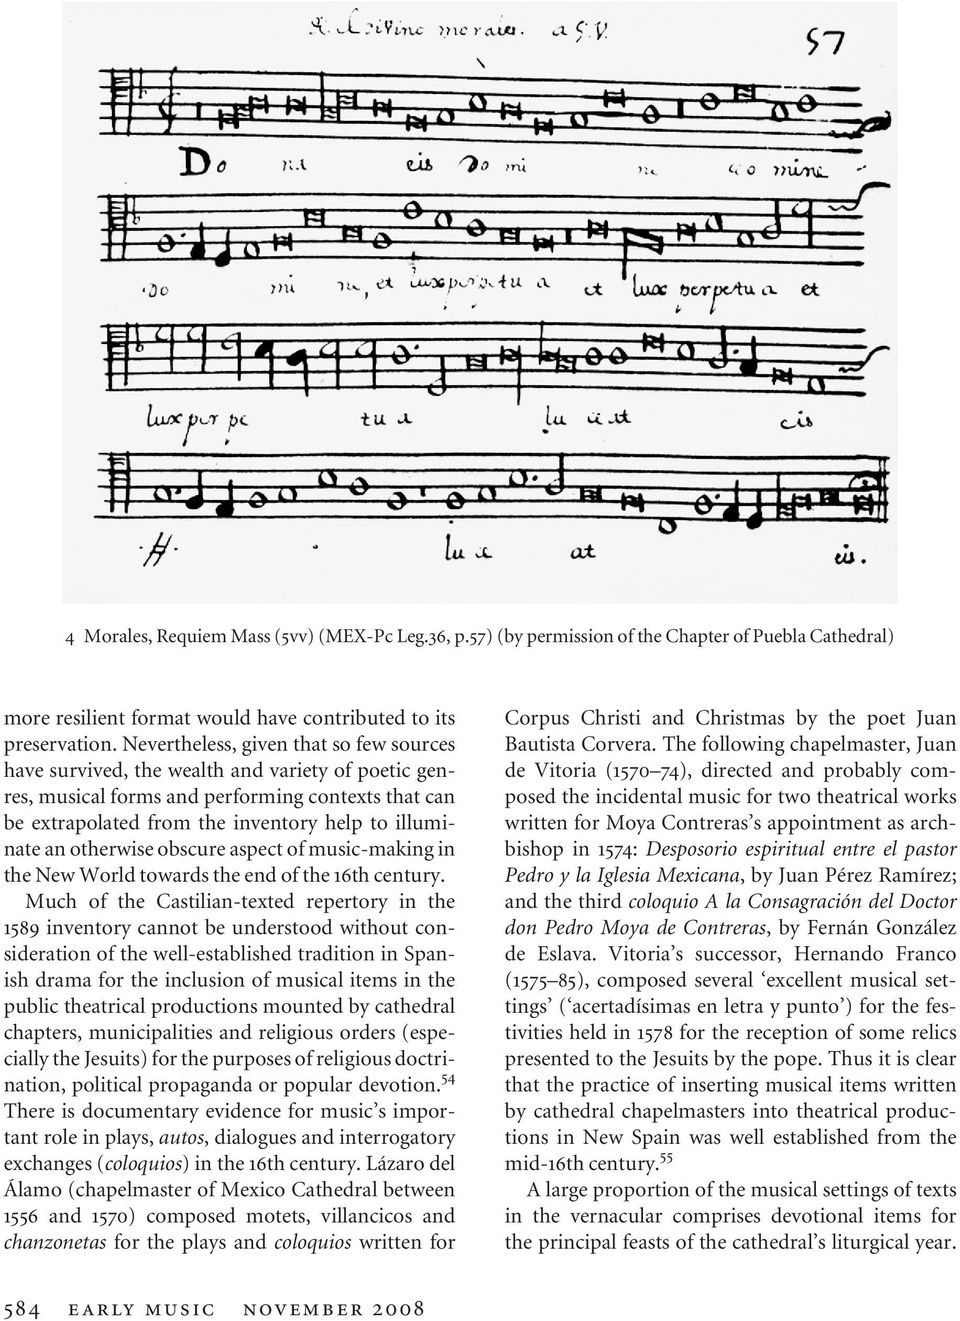 otherwise obscure aspect of music-making in the New World towards the end of the 16th century.